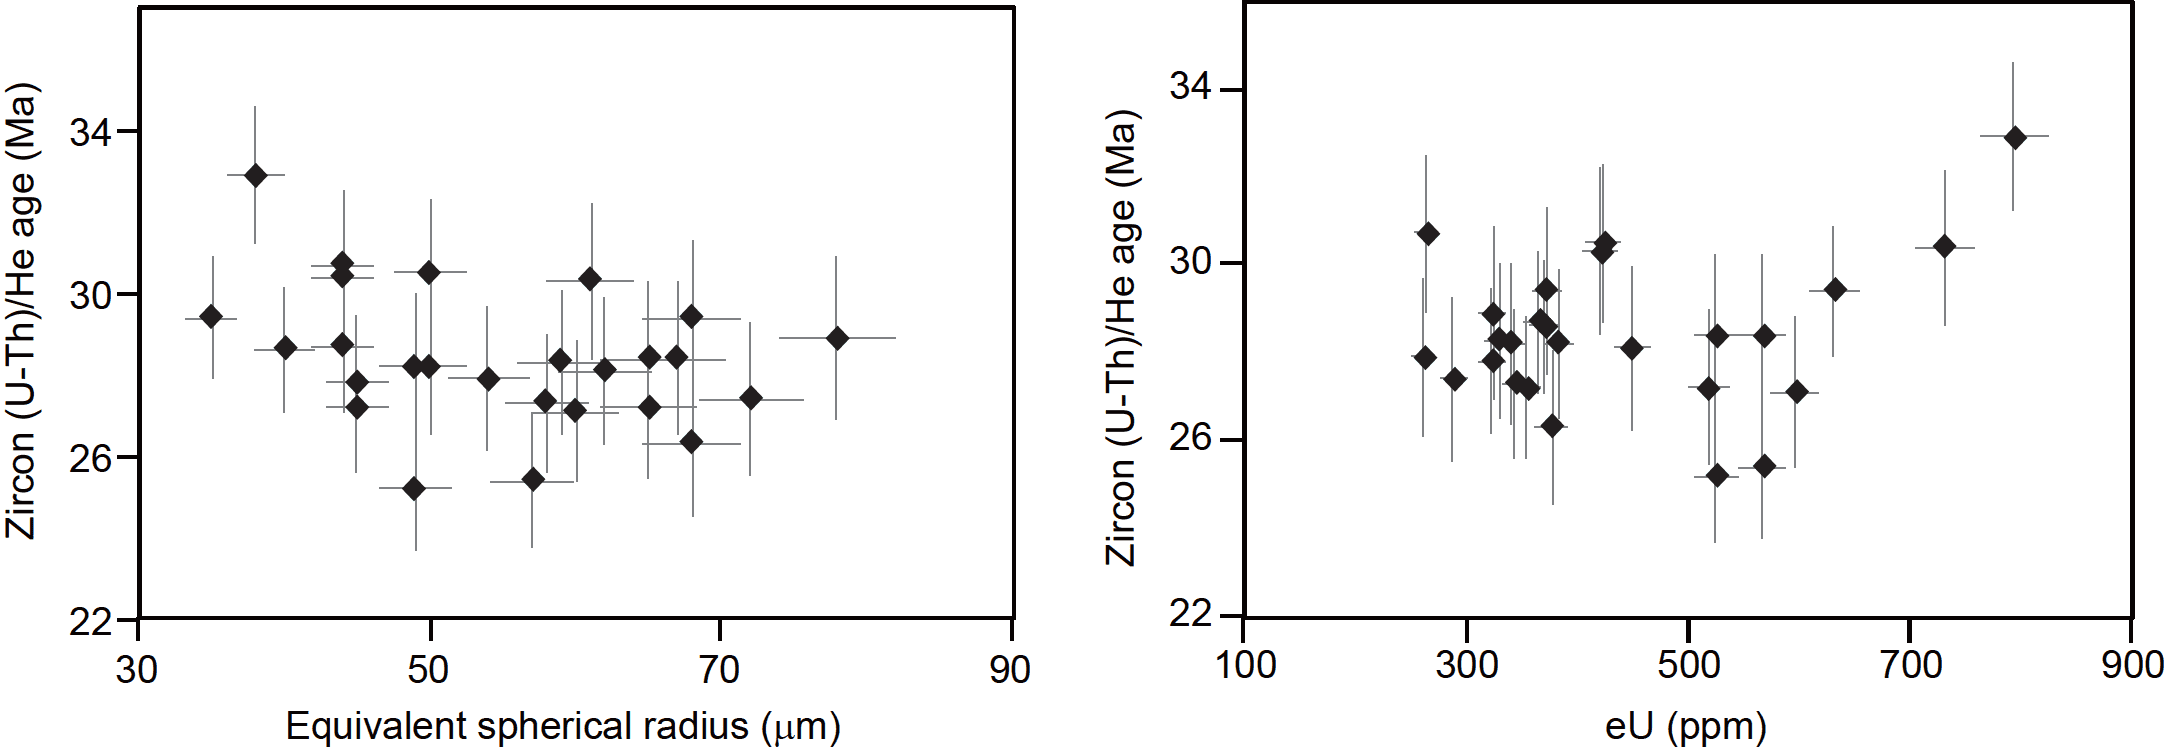 Diffusion of helium in FCT zircon